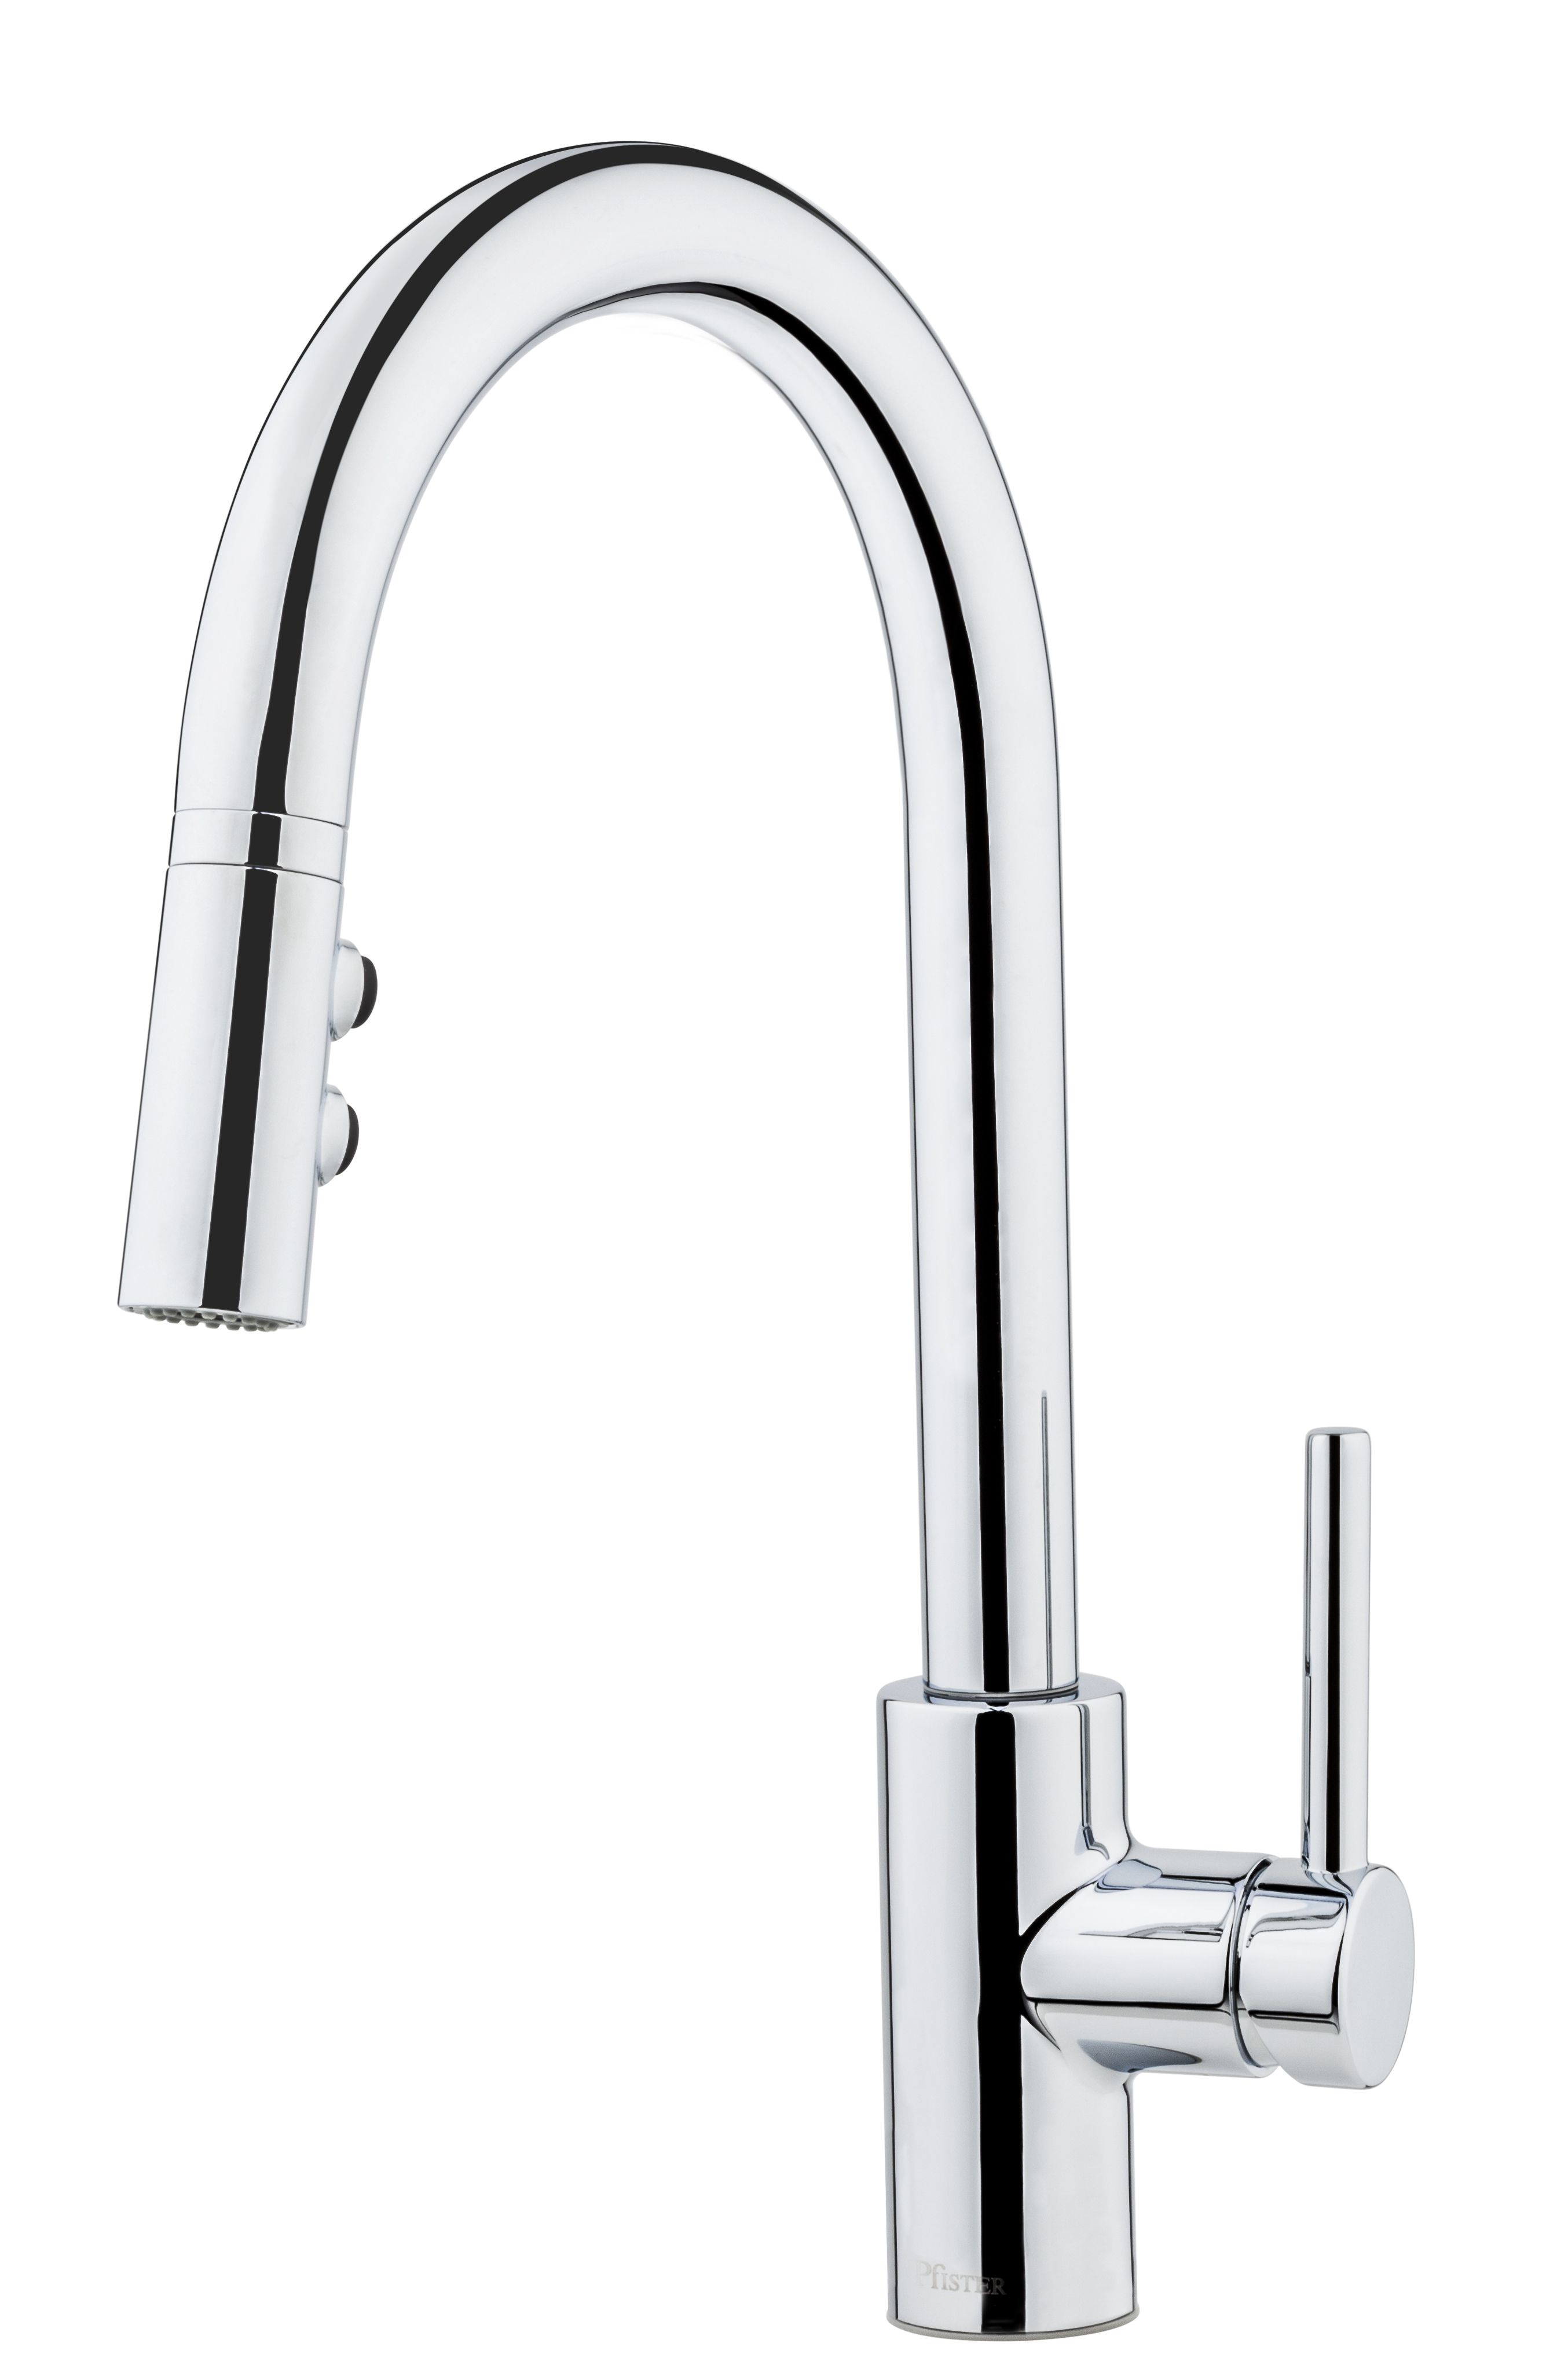 Fullerton single handle pull down chrome kitchen faucet